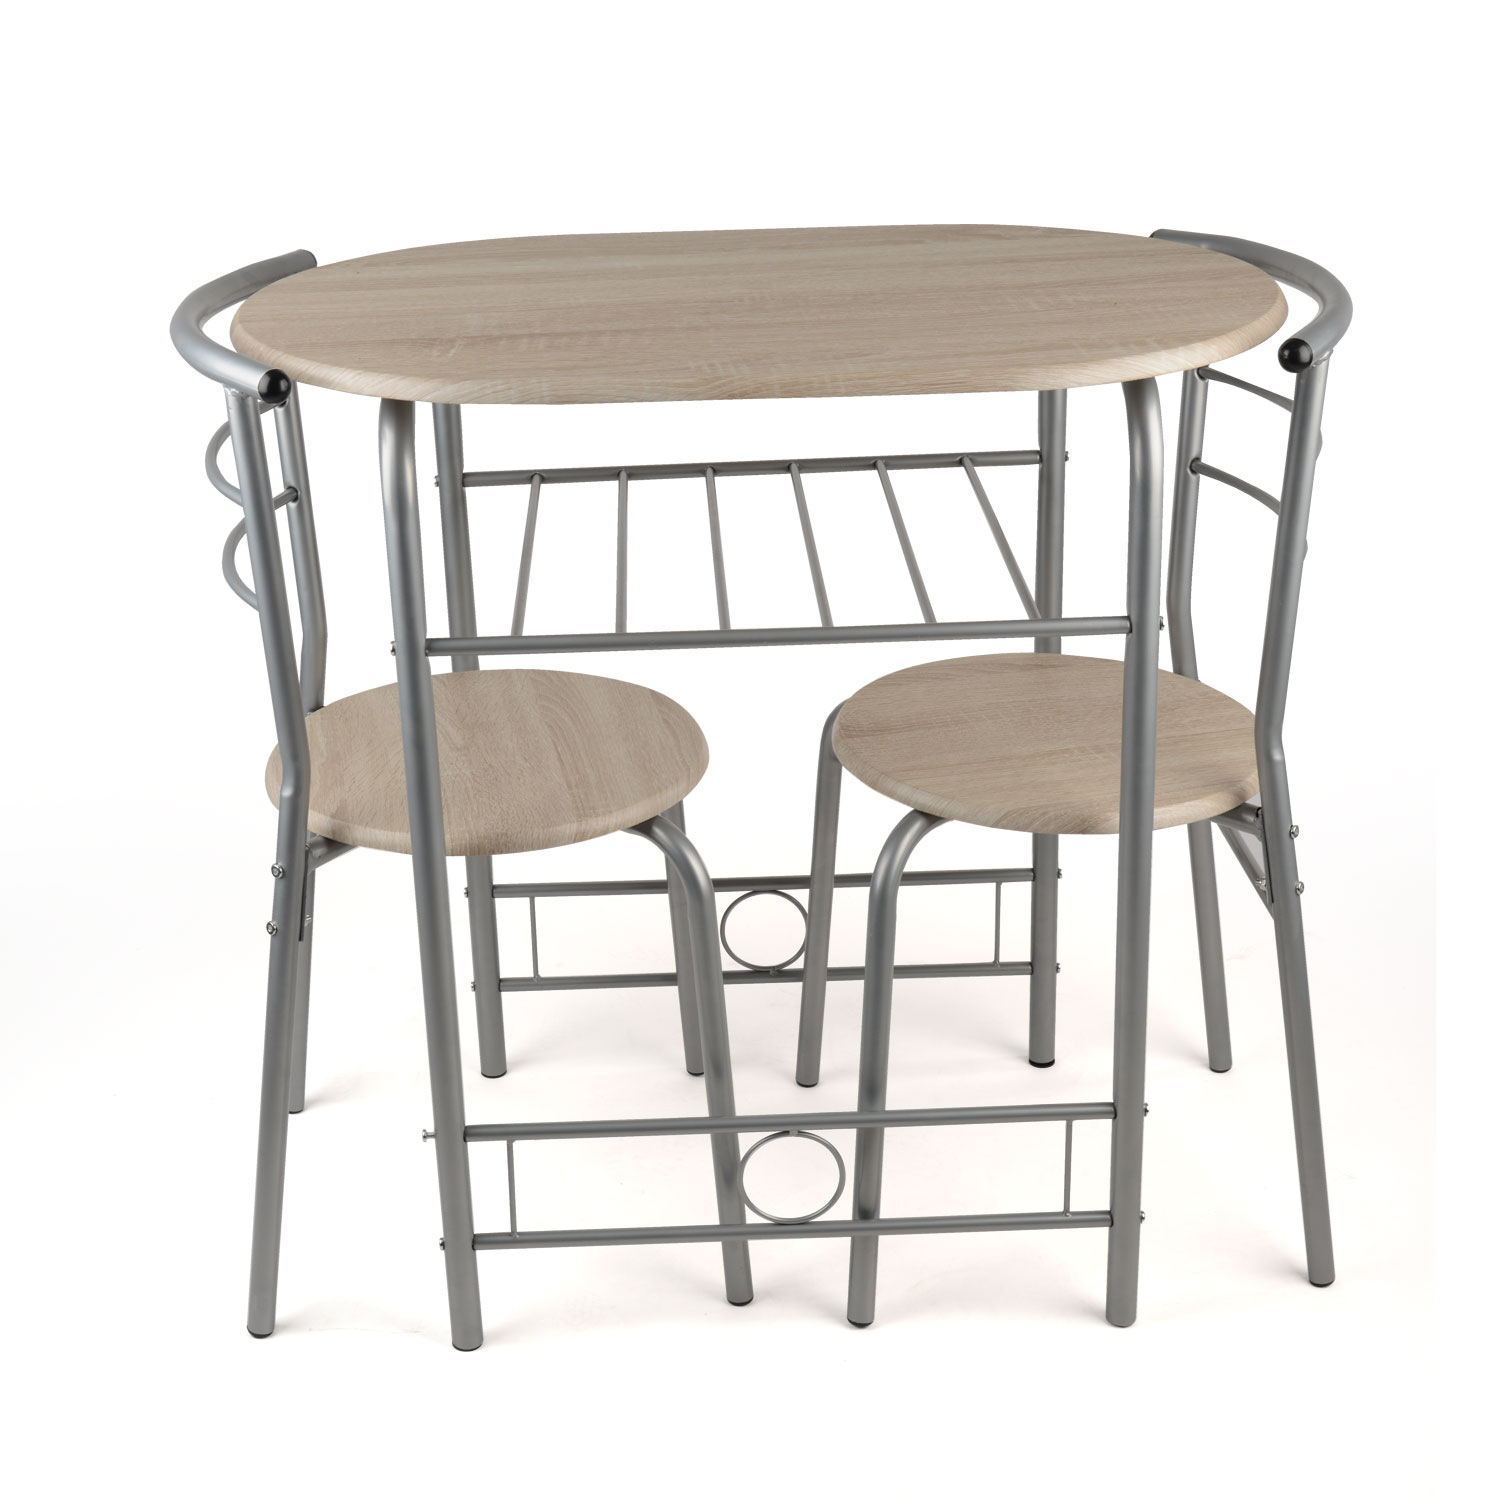 3 Piece Dining Set Breakfast Bar Kitchen Table Chairs Christow